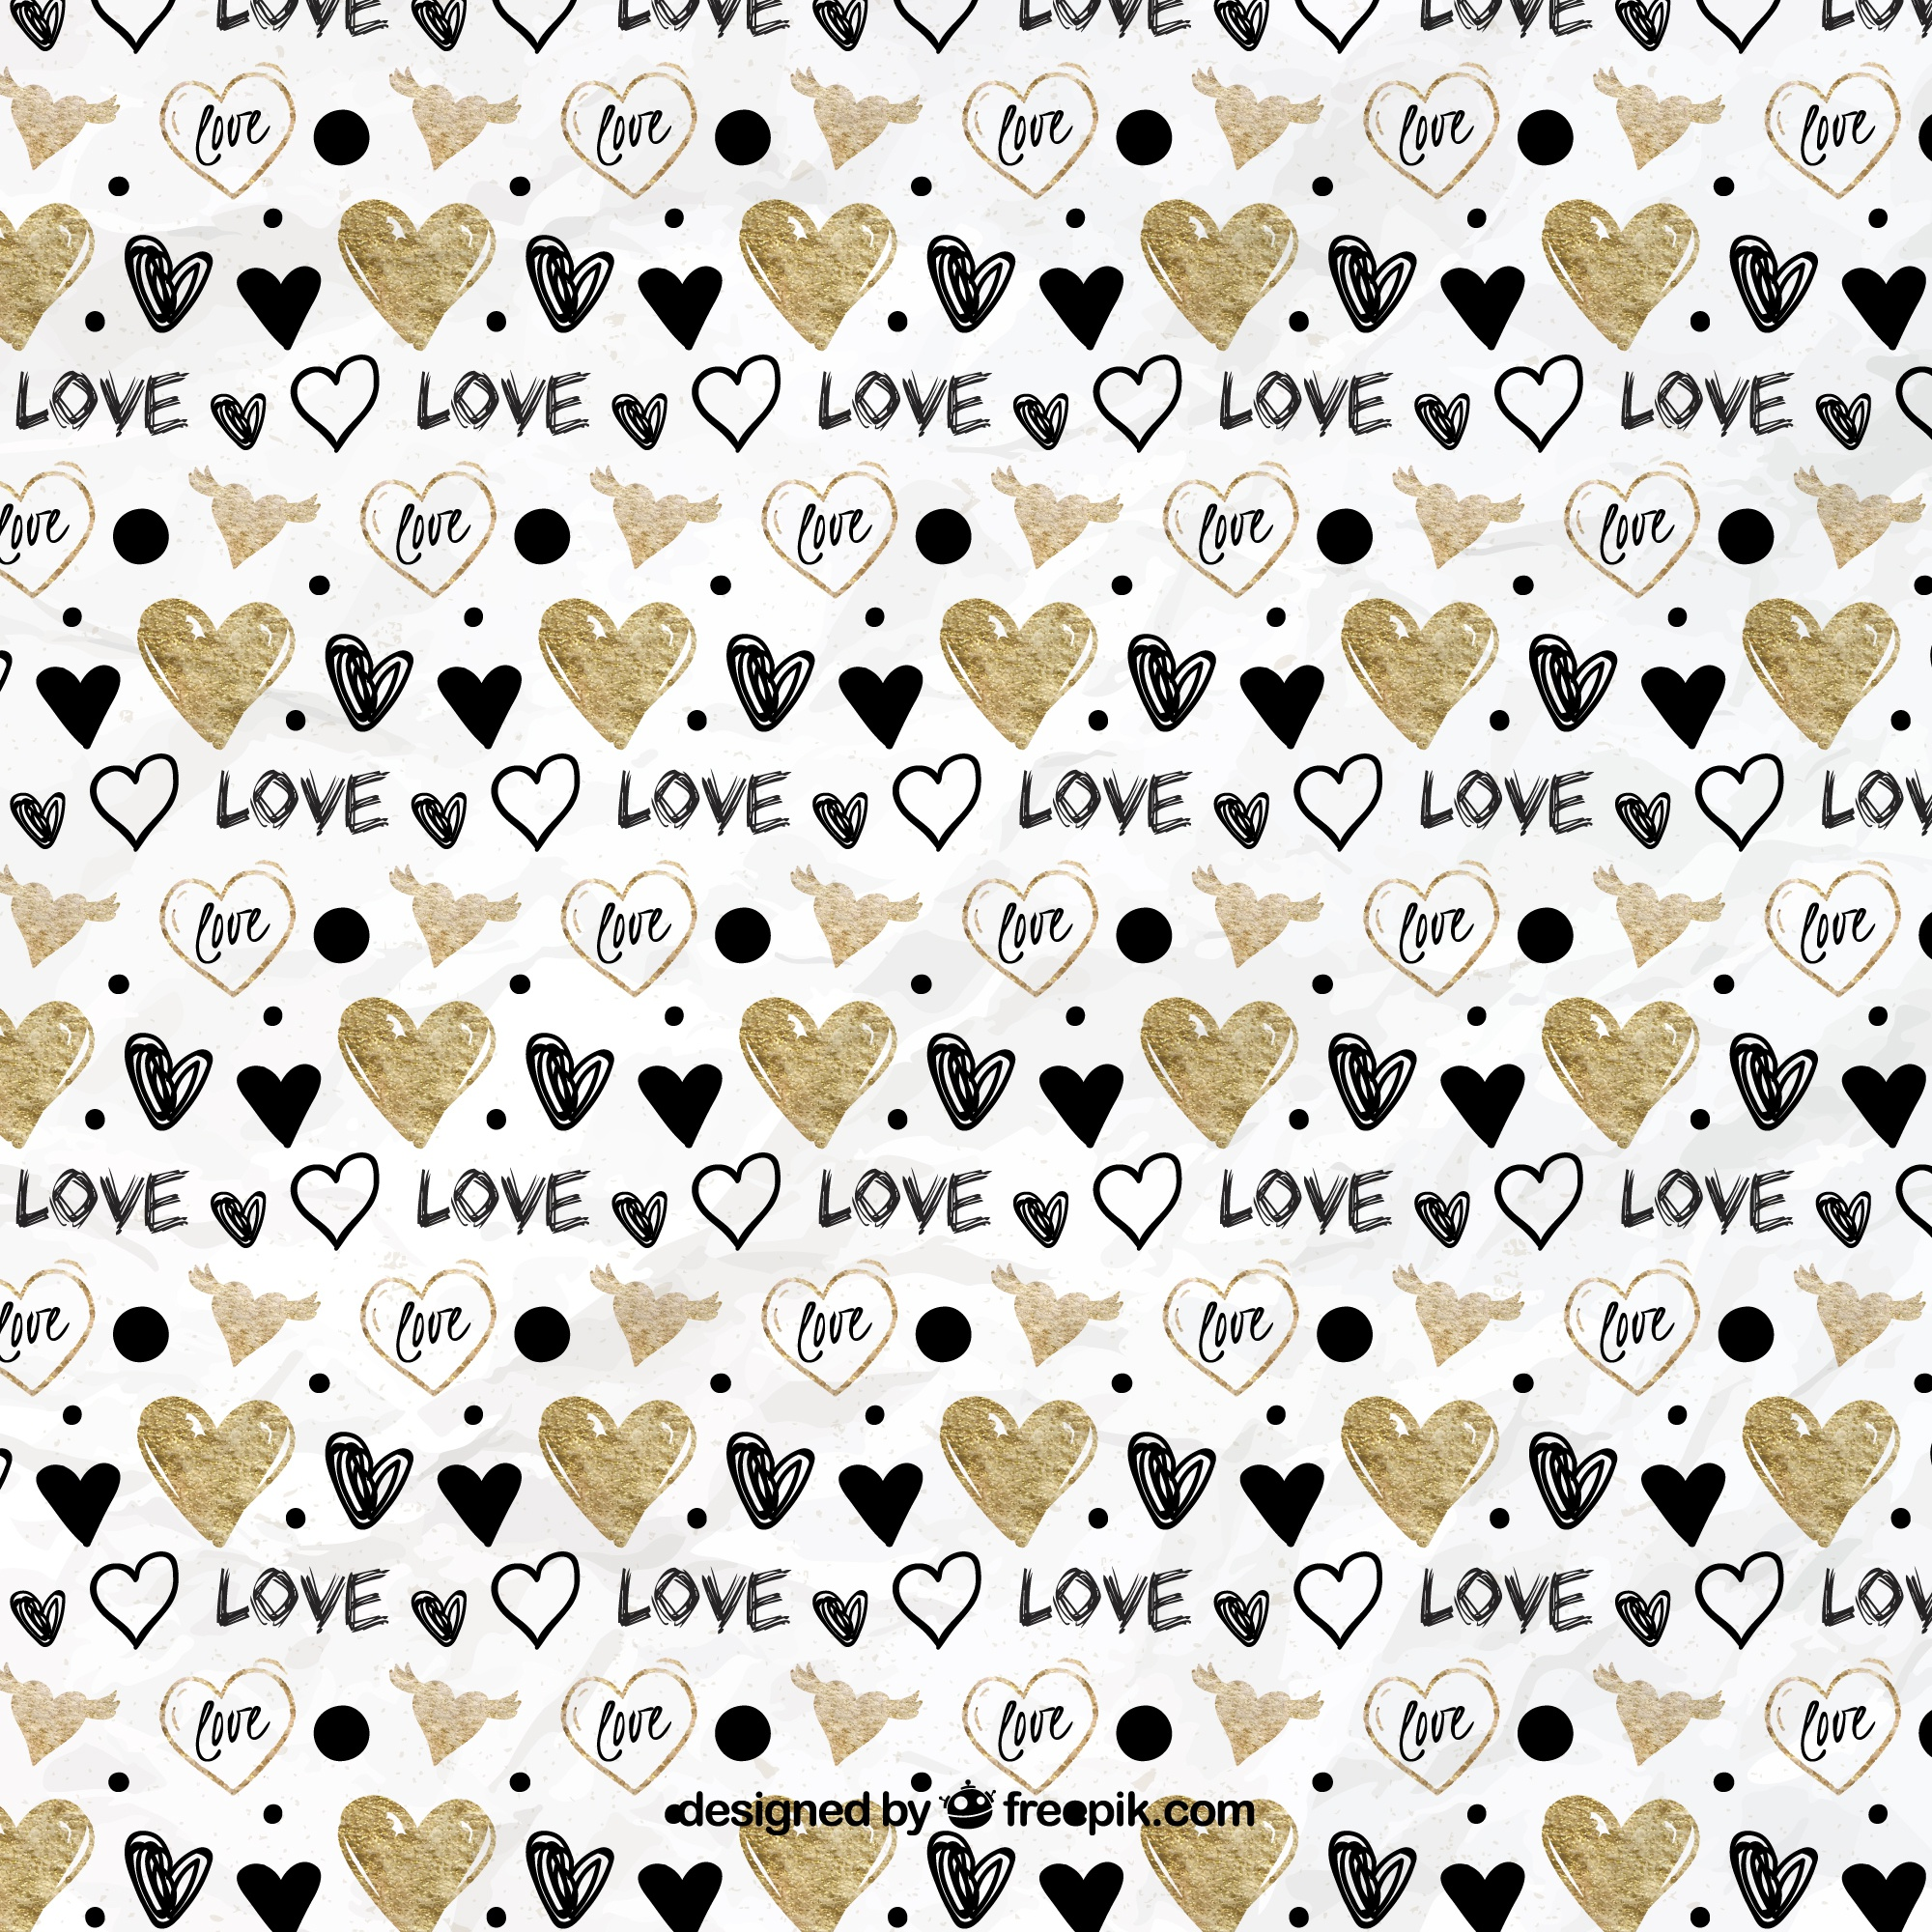 Hand drawn golden and black hearts pattern